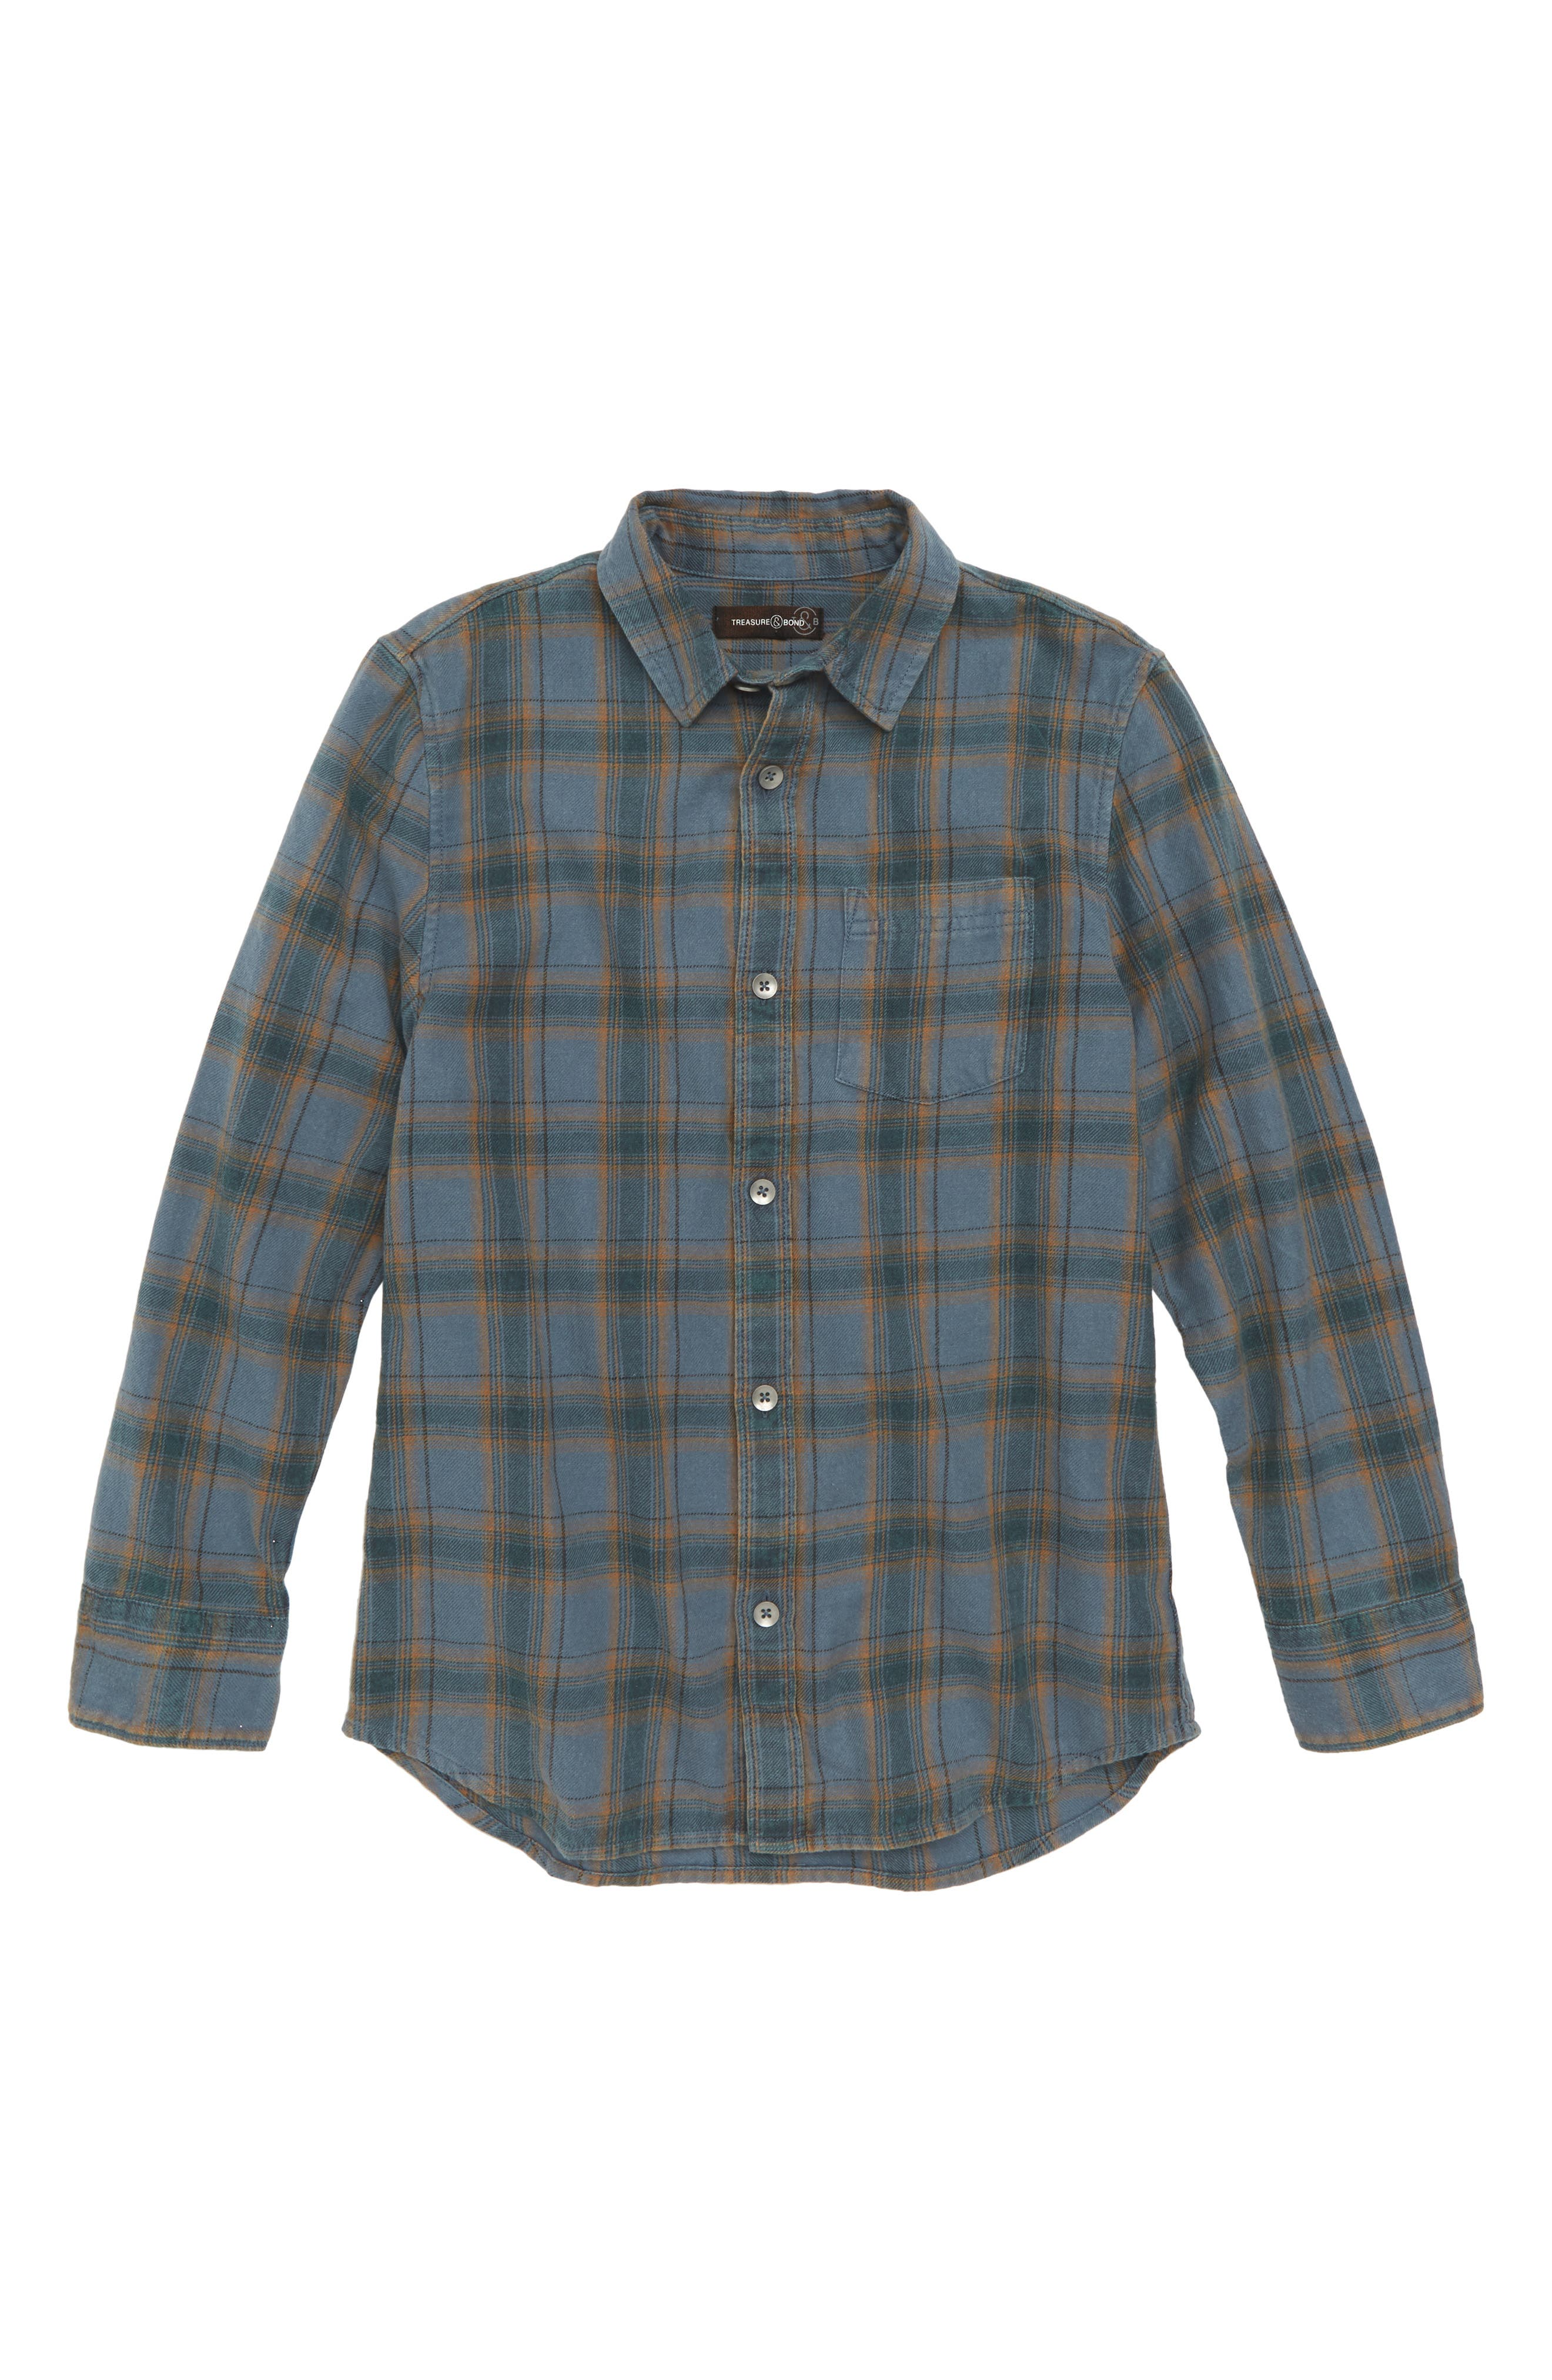 Washed Out Flannel Shirt,                             Main thumbnail 1, color,                             420